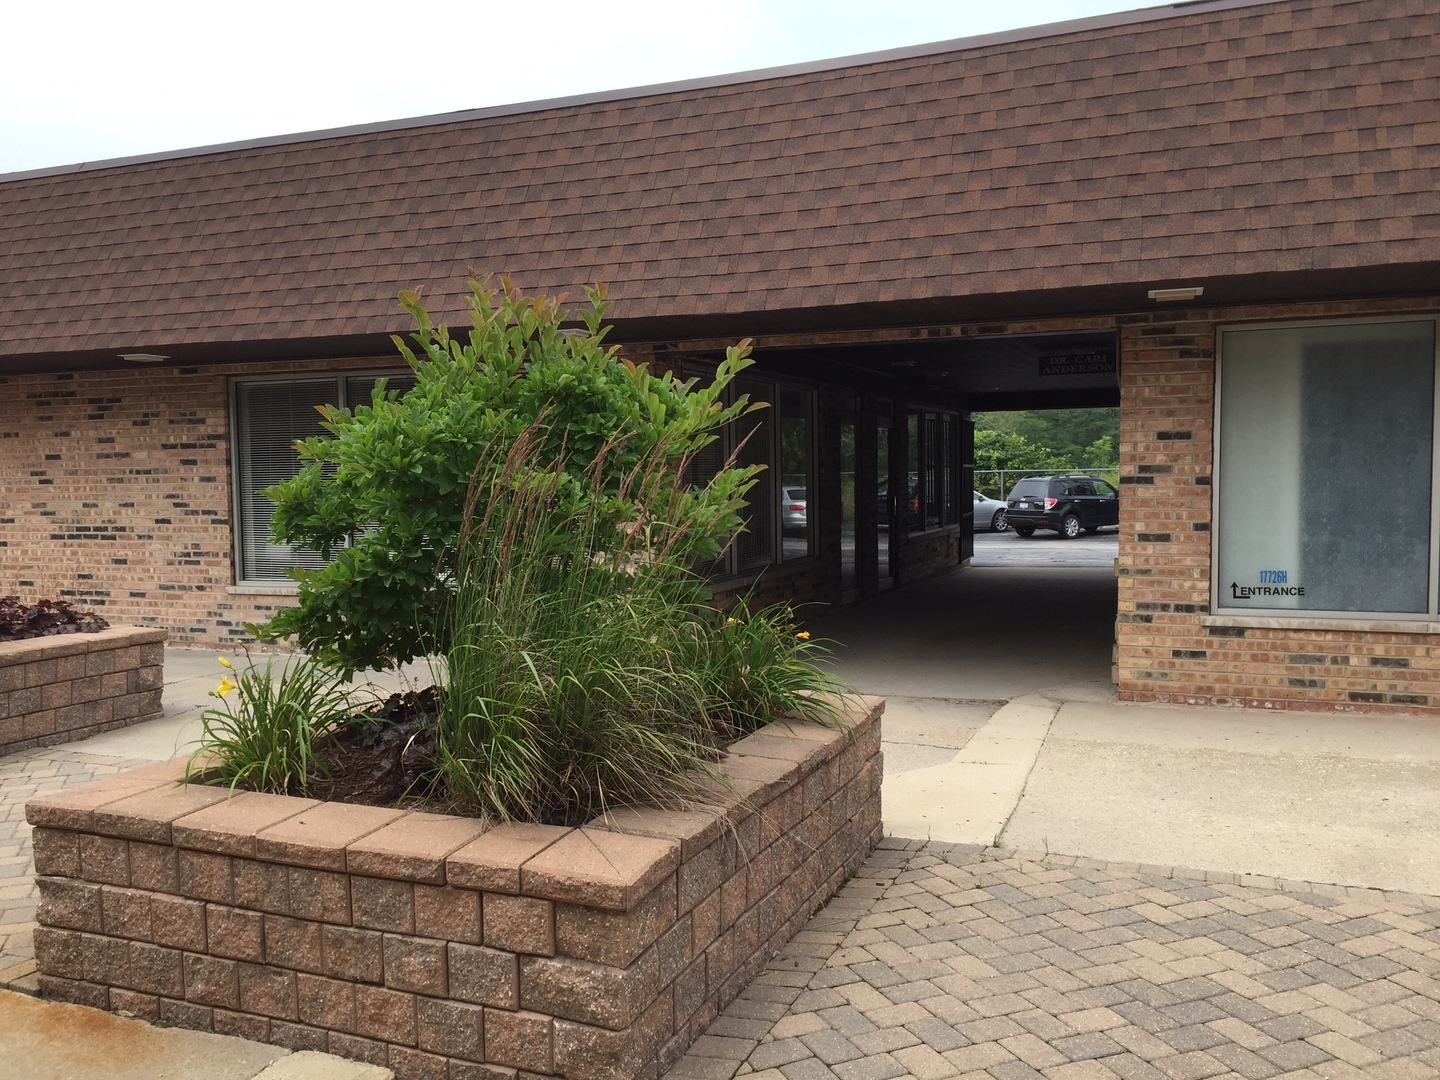 17732 Oak Park Unit Unit l ,Tinley Park, Illinois 60477